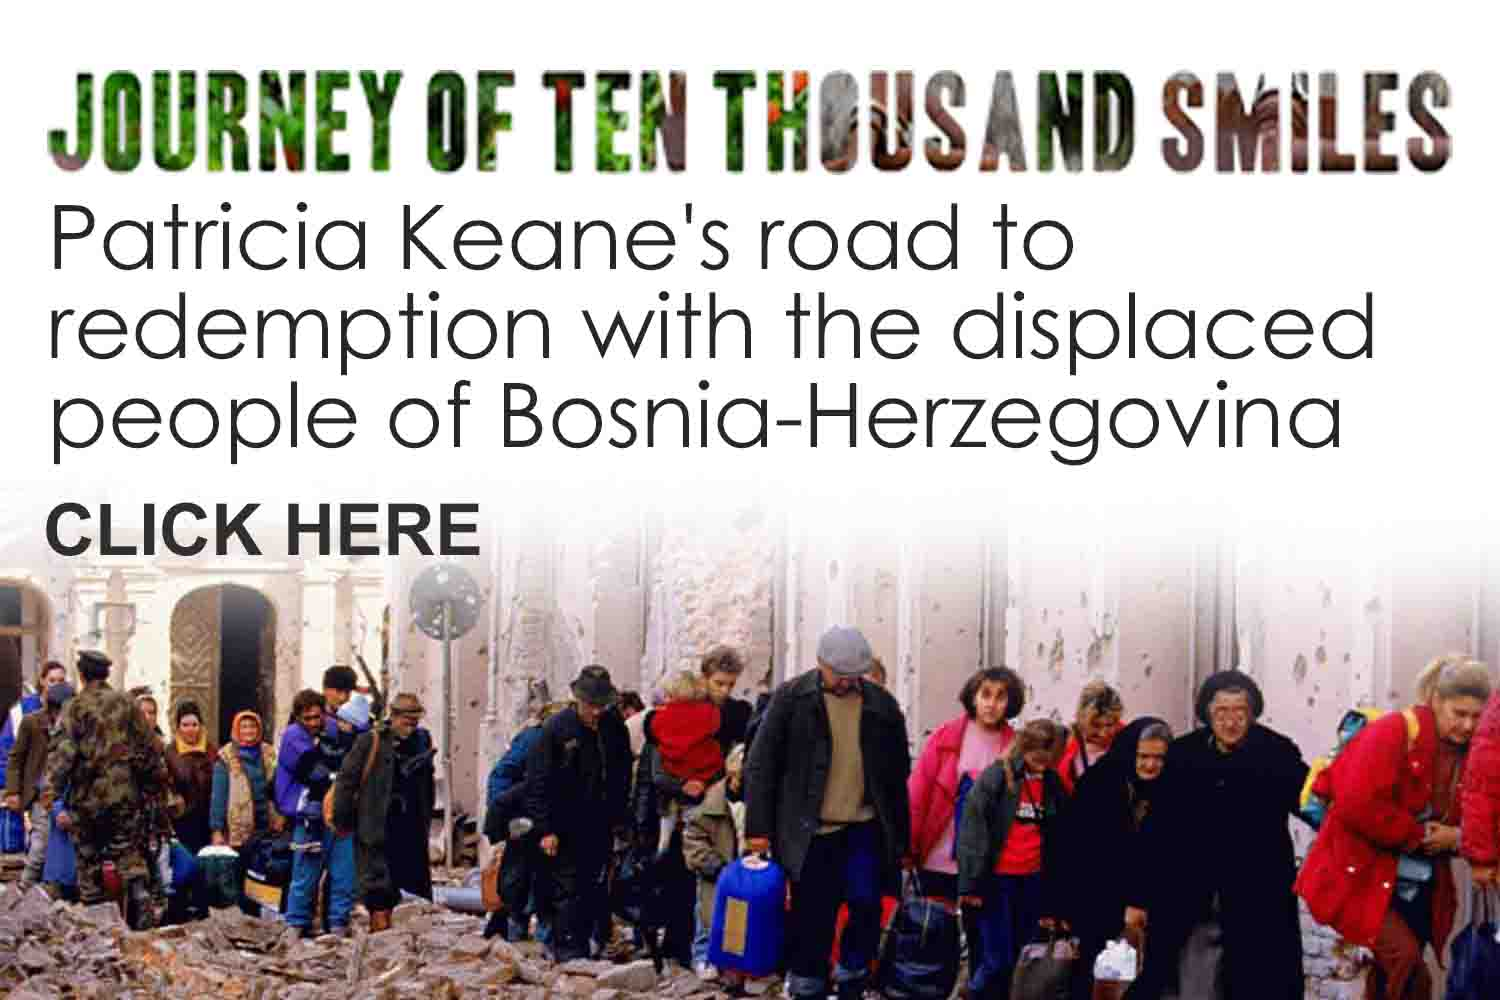 Patricia Keane's road to redemption with the displaced people of Bosnia-Herzegovina is courageously told in her critically acclaimed book Journey Of Ten Thousand Smiles.